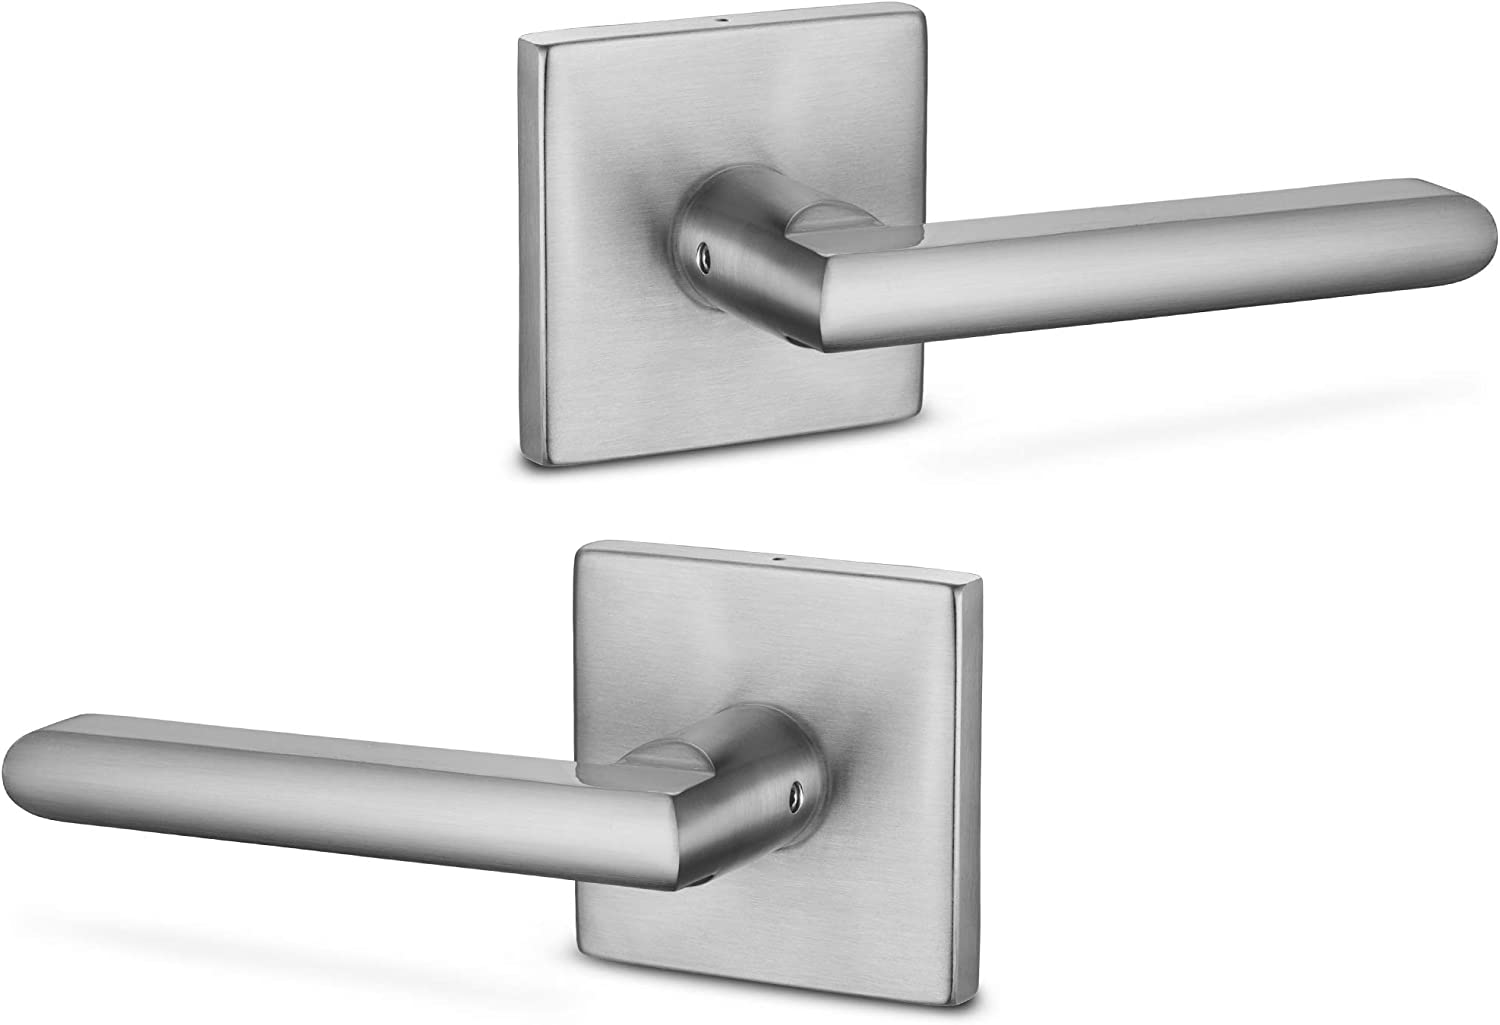 Berlin Modisch Dummy Lever Door Handle Pack Of 2 Slim Square Non Turning Single Side Pull Only Lever Set For Closet Or French Doors Heavy Duty Satin Nickel Finish